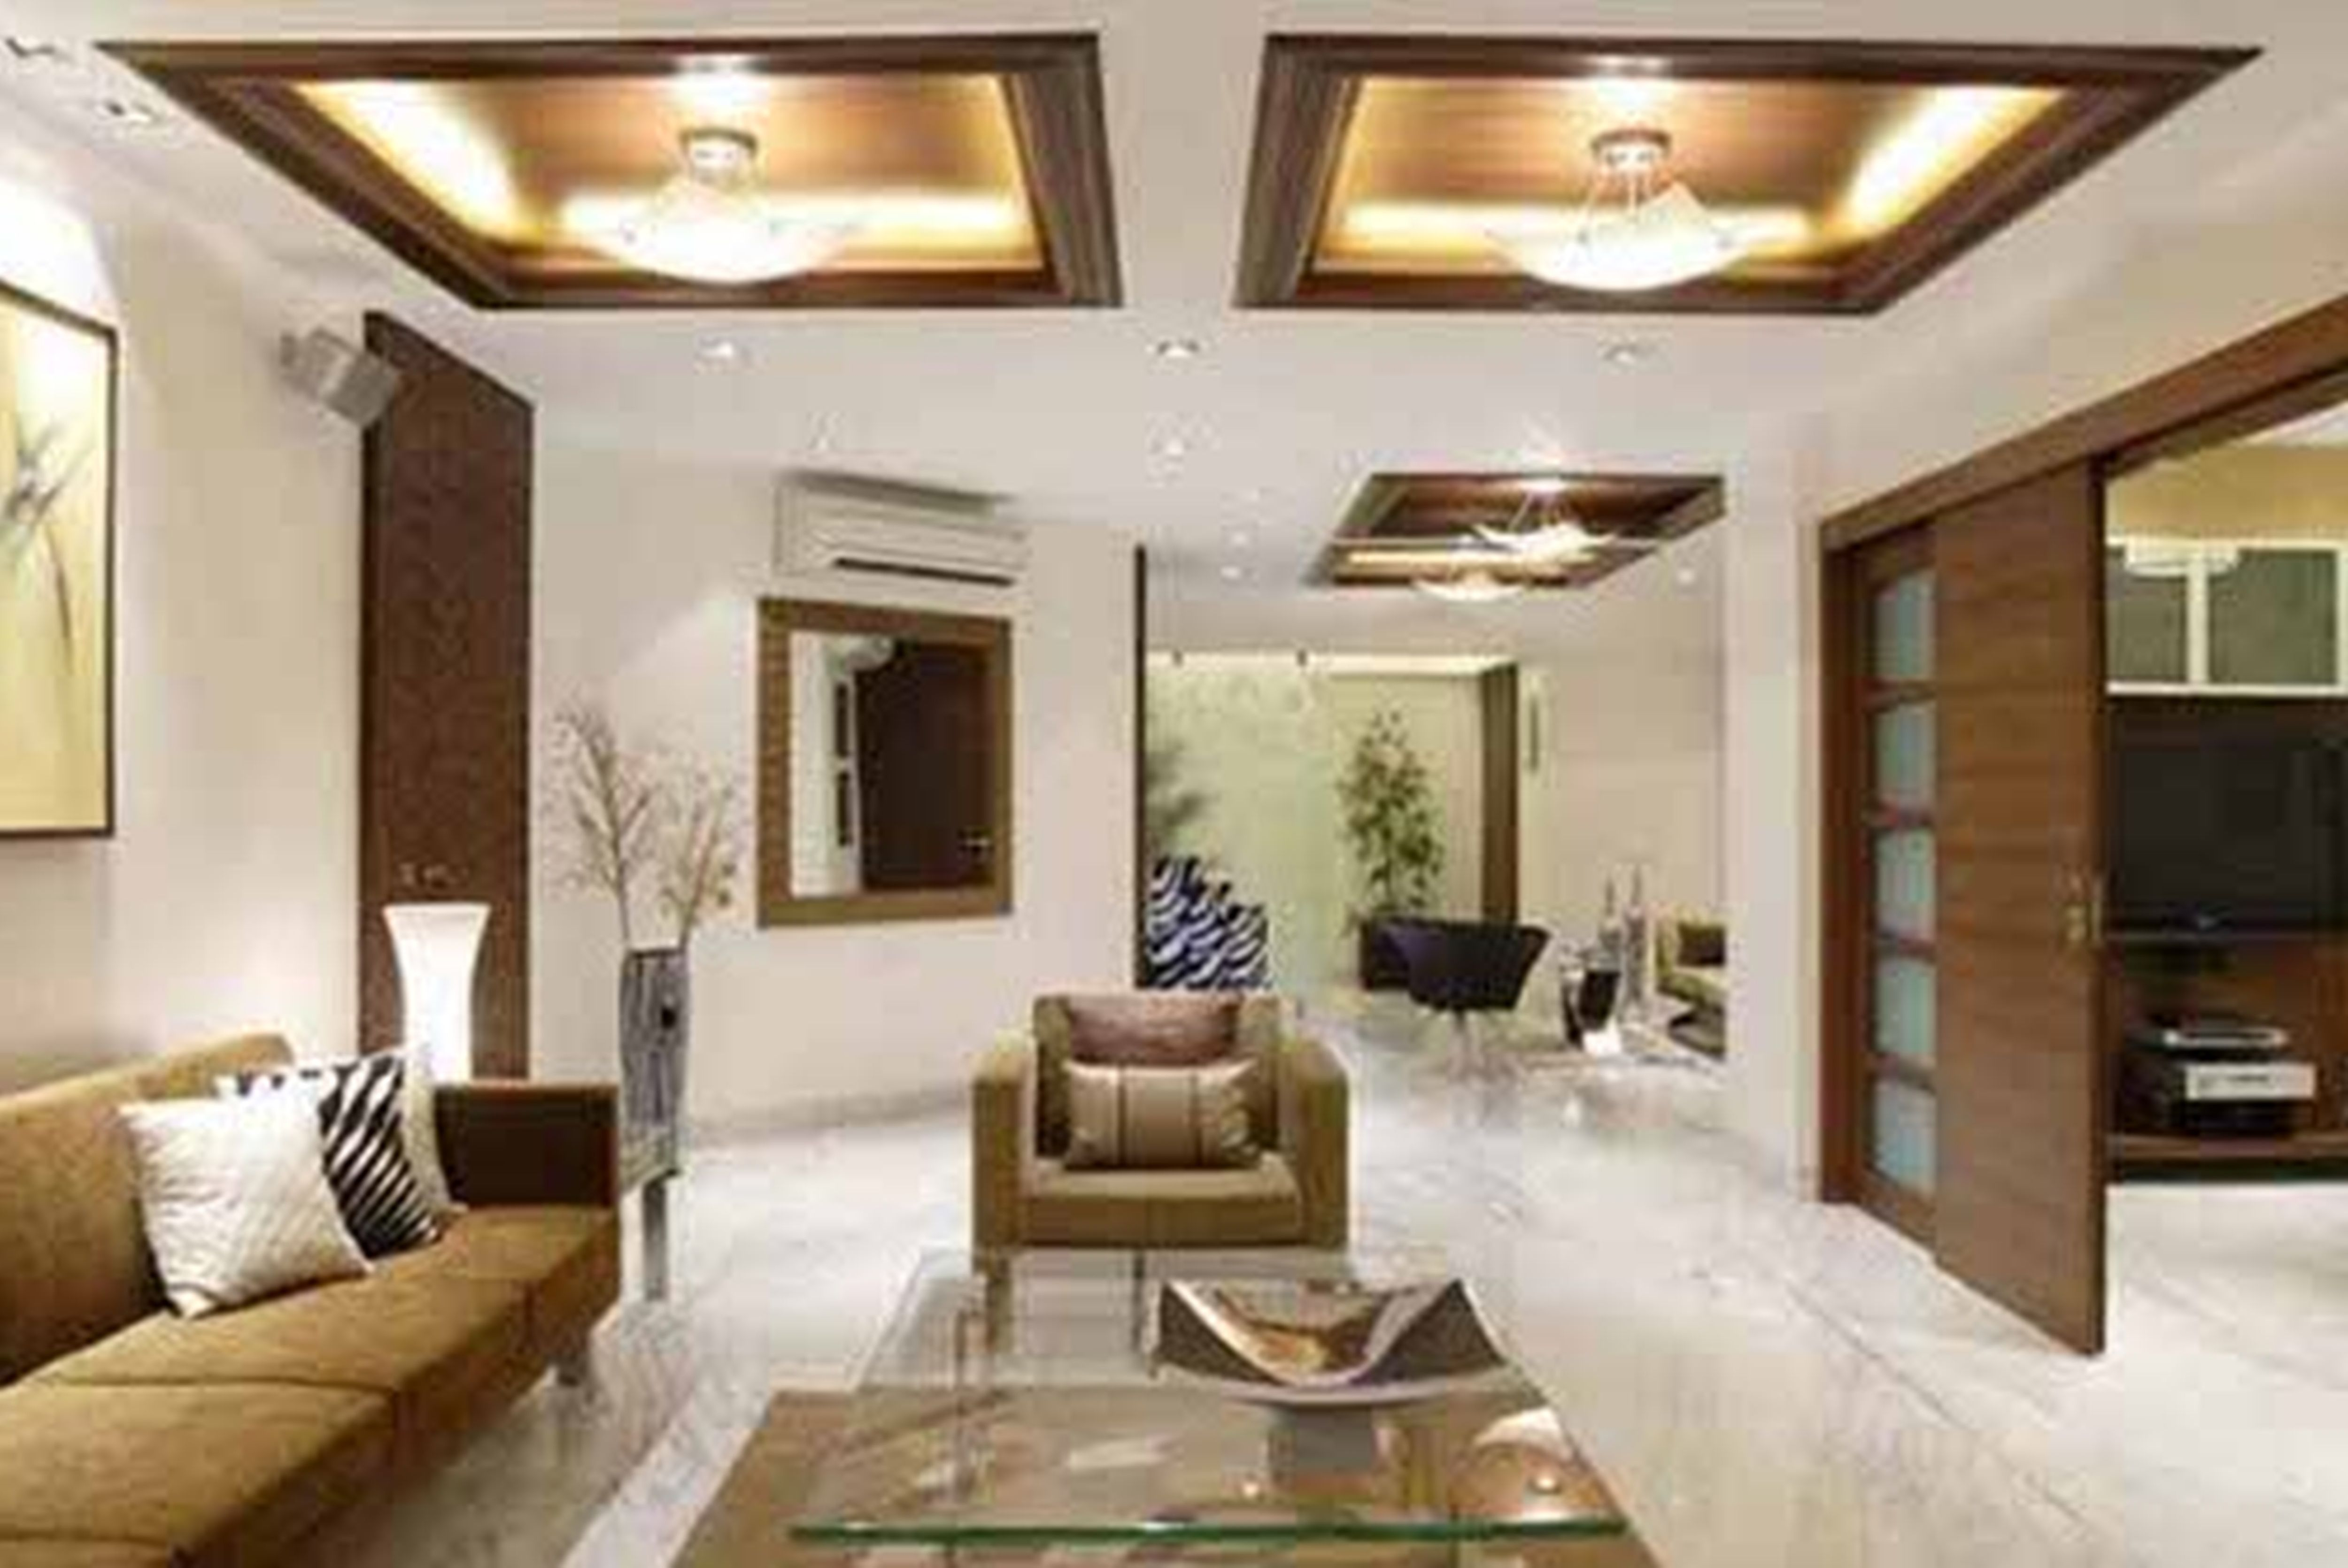 Affordable interior design ideas joy studio design for Picture of interior designs of house